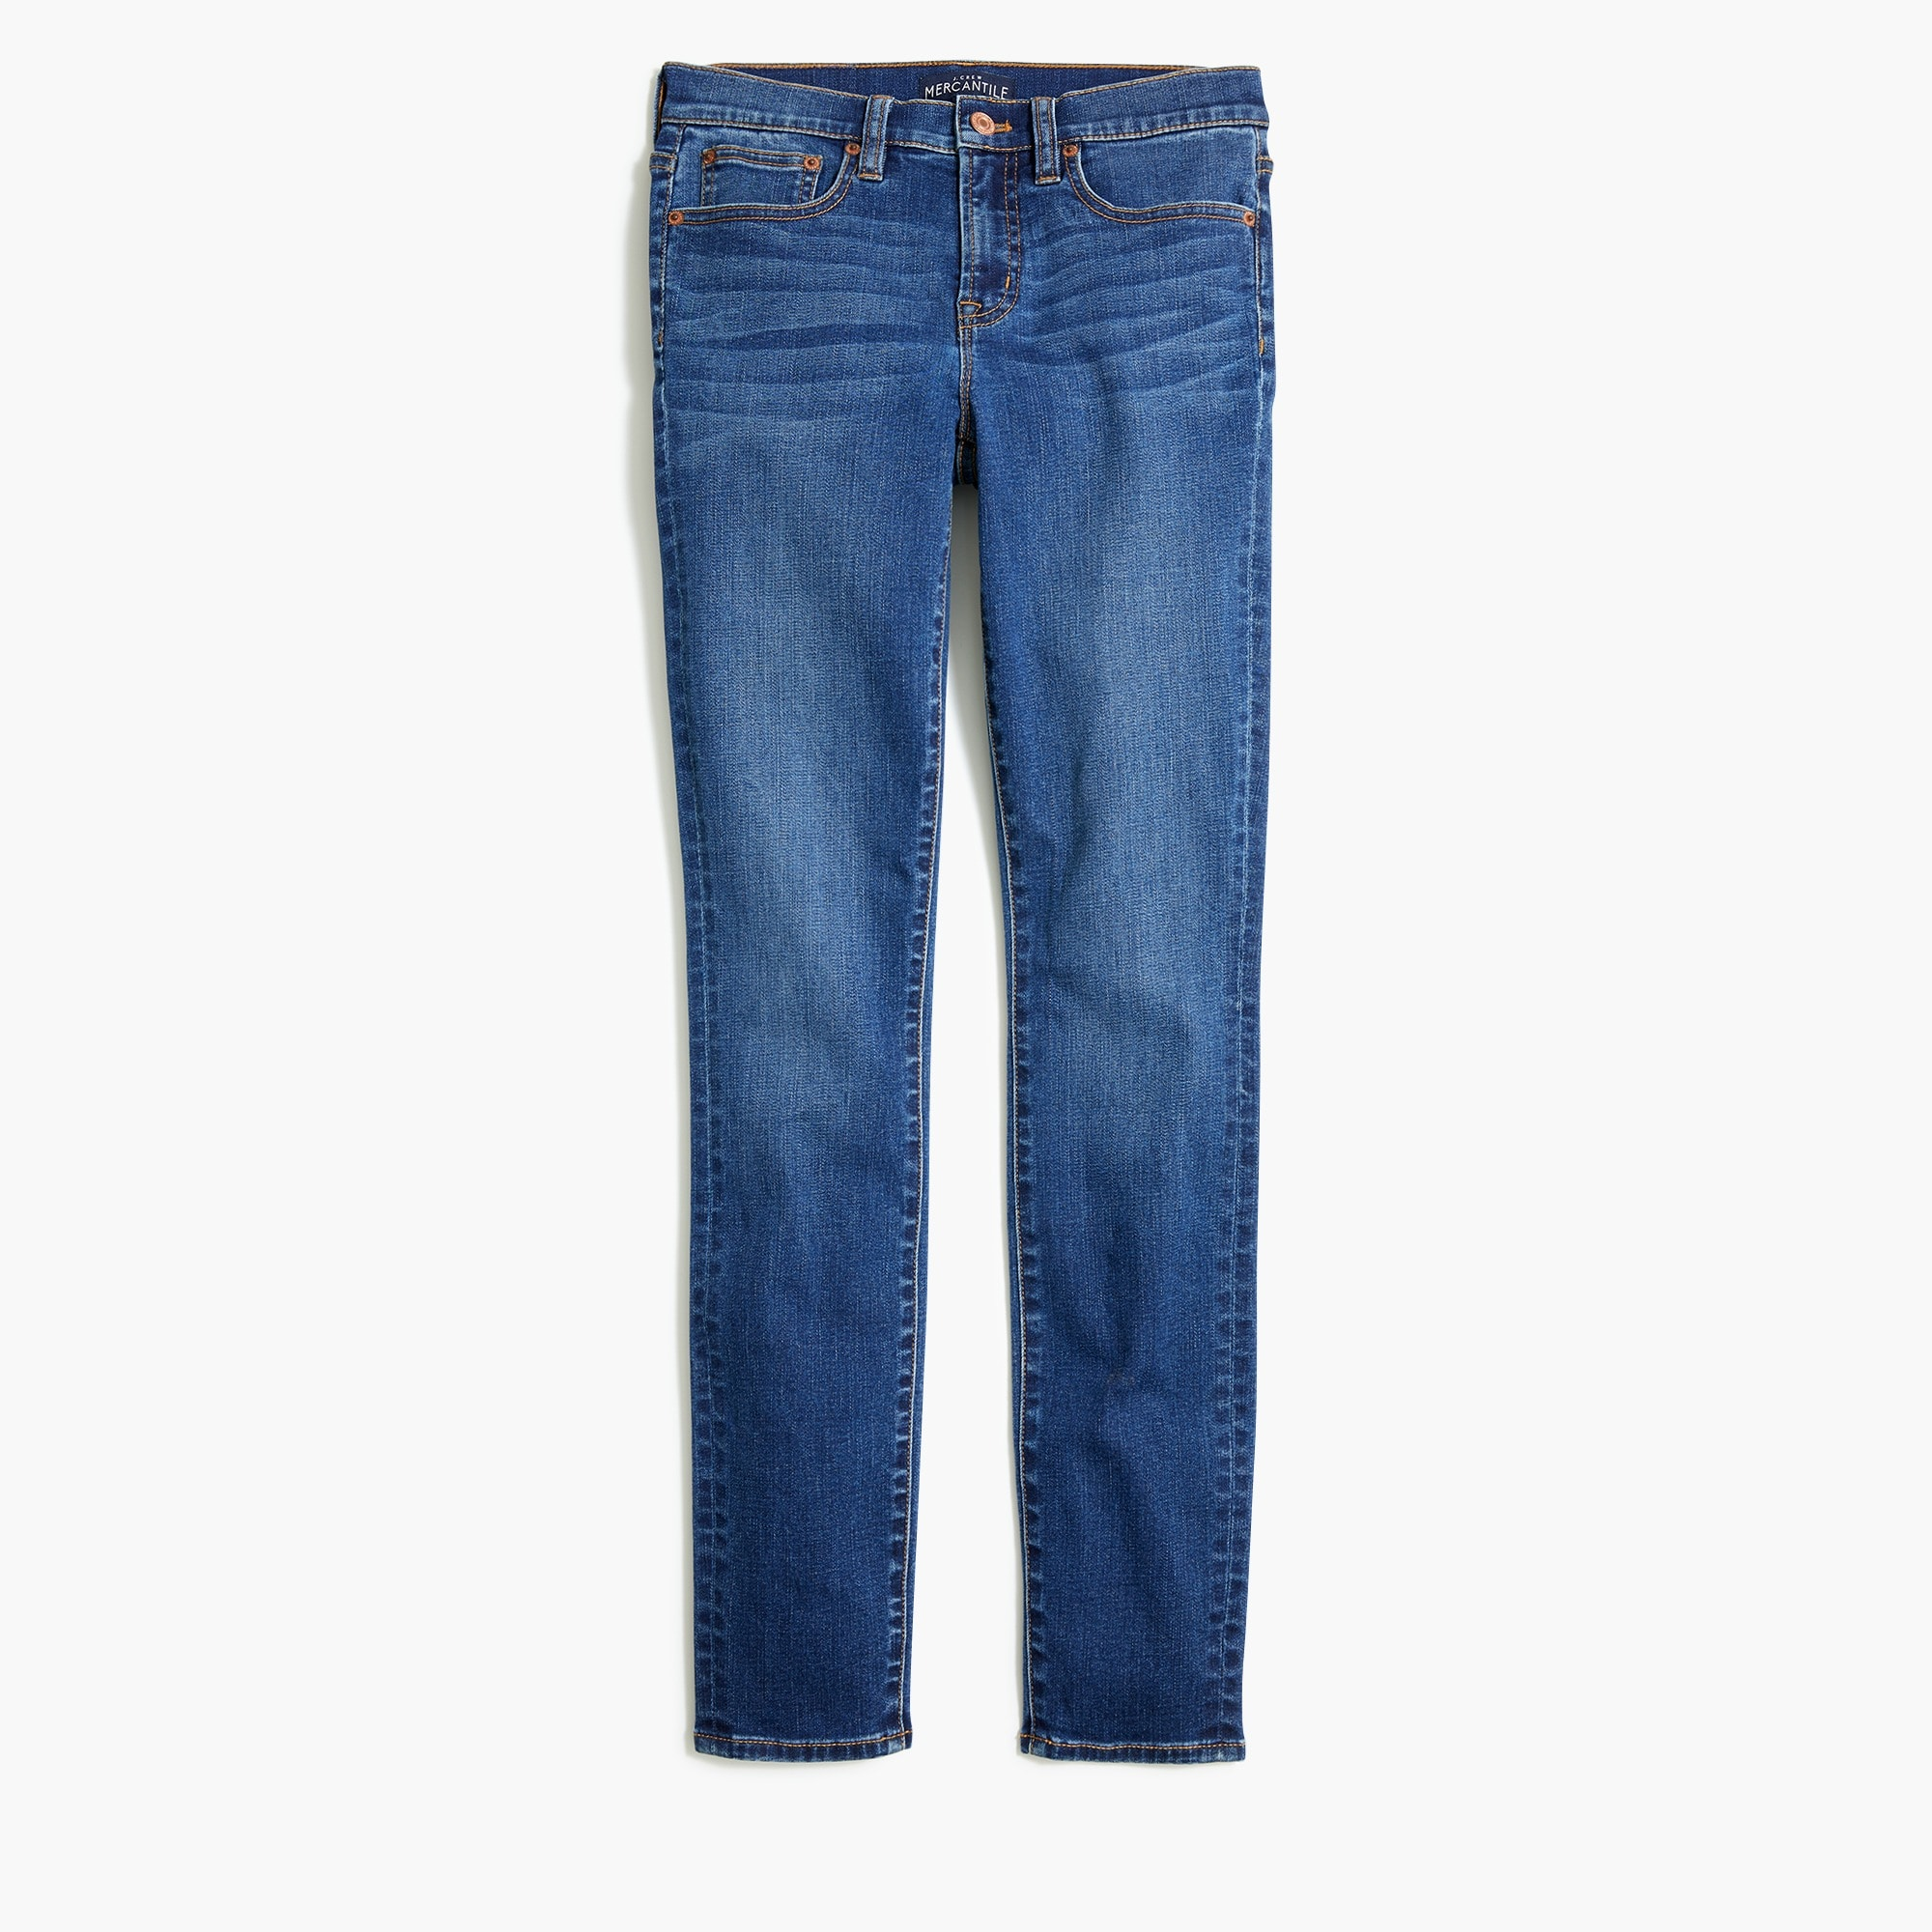 "Image 1 for 8"" midrise skinny jean in Rockaway wash with 26"" inseam"